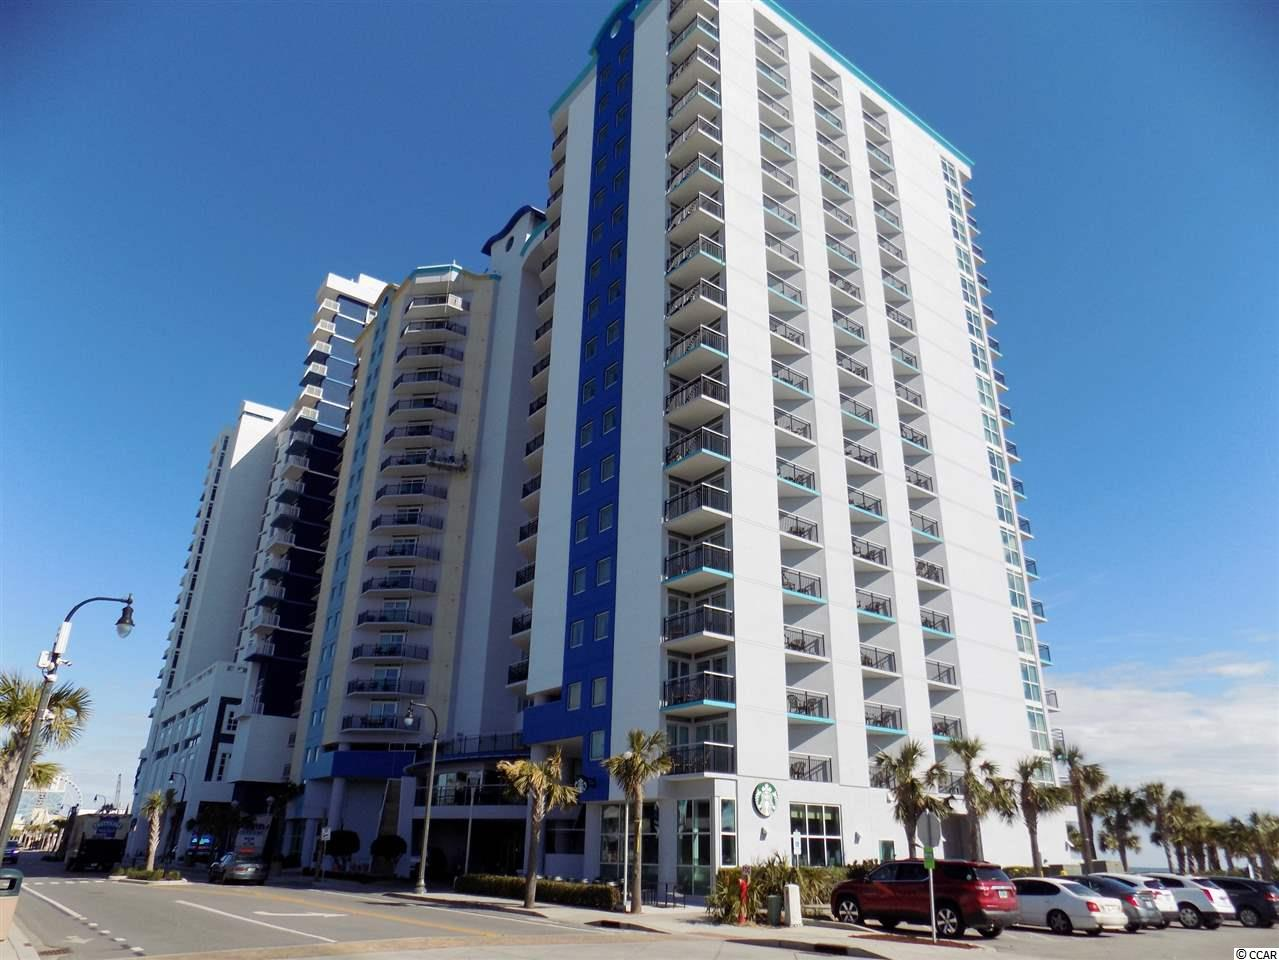 Stunning views abound from the three decks off this gorgeous oceanfront condo on the Boardwalk in the heart of Myrtle Beach. This is a three bedroom lockout unit with enormous rental potential. Entering through the main exterior door, you'll find a large foyer area. On one side there is a one bedroom unit with kitchenette, full bath and ocean view deck. On the other side of the foyer you will find the entrance to the large two bedroom unit with full kitchen, dining area and spacious living area with floor to ceiling windows giving you spectacular views. Rent one side while using the other or enjoy the entire unit with plenty of room for a large group. This unit comes fully furnished - just bring your suitcase! The Bay View Resort is a full service resort with a Starbucks coffee shop, fitness center, indoor pools, lazy river, outdoor water park and quick access to the beach. The HOA fee includes absolutely everything including insurance, HO6 policy, water, electricity and telephone in the unit, cable, internet and trash service.